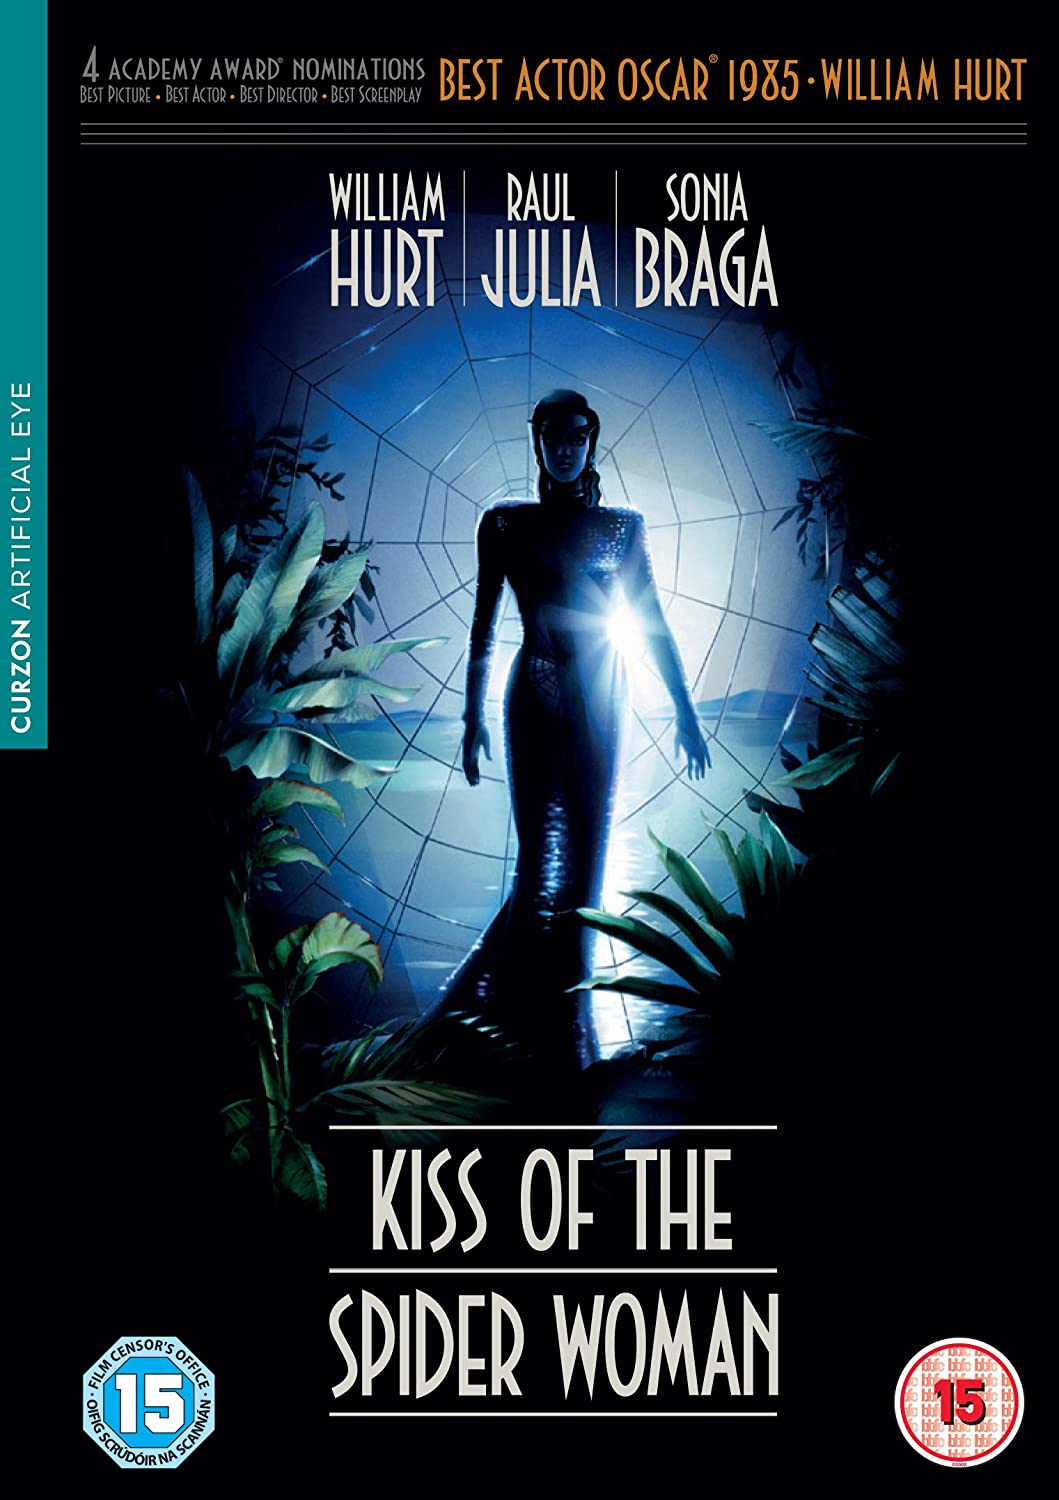 Kiss of the Spider Woman [DVD]: Amazon.co.uk: William Hurt, Raul ...